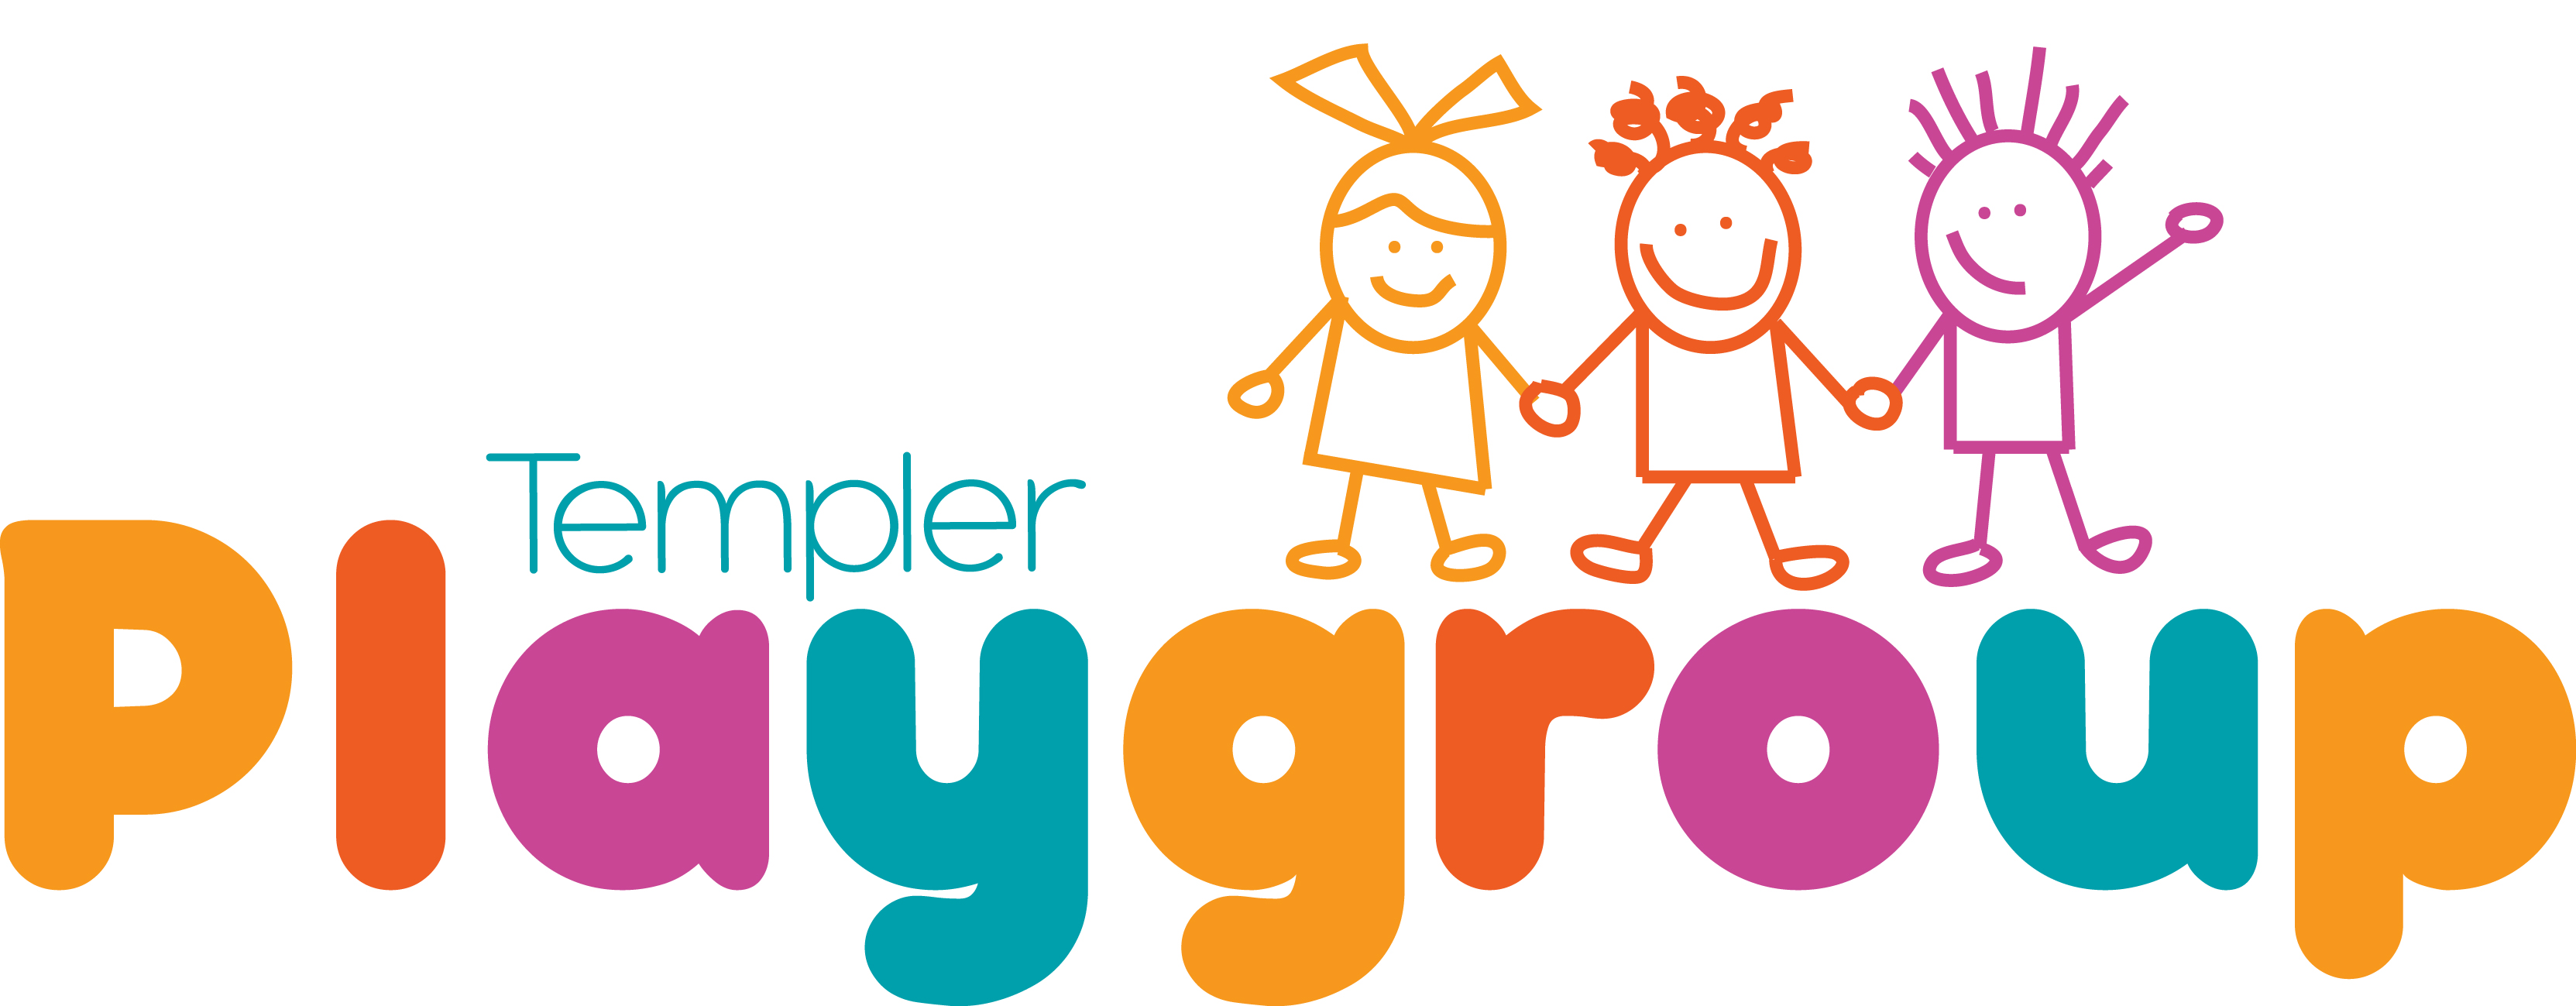 Templer Playgroup